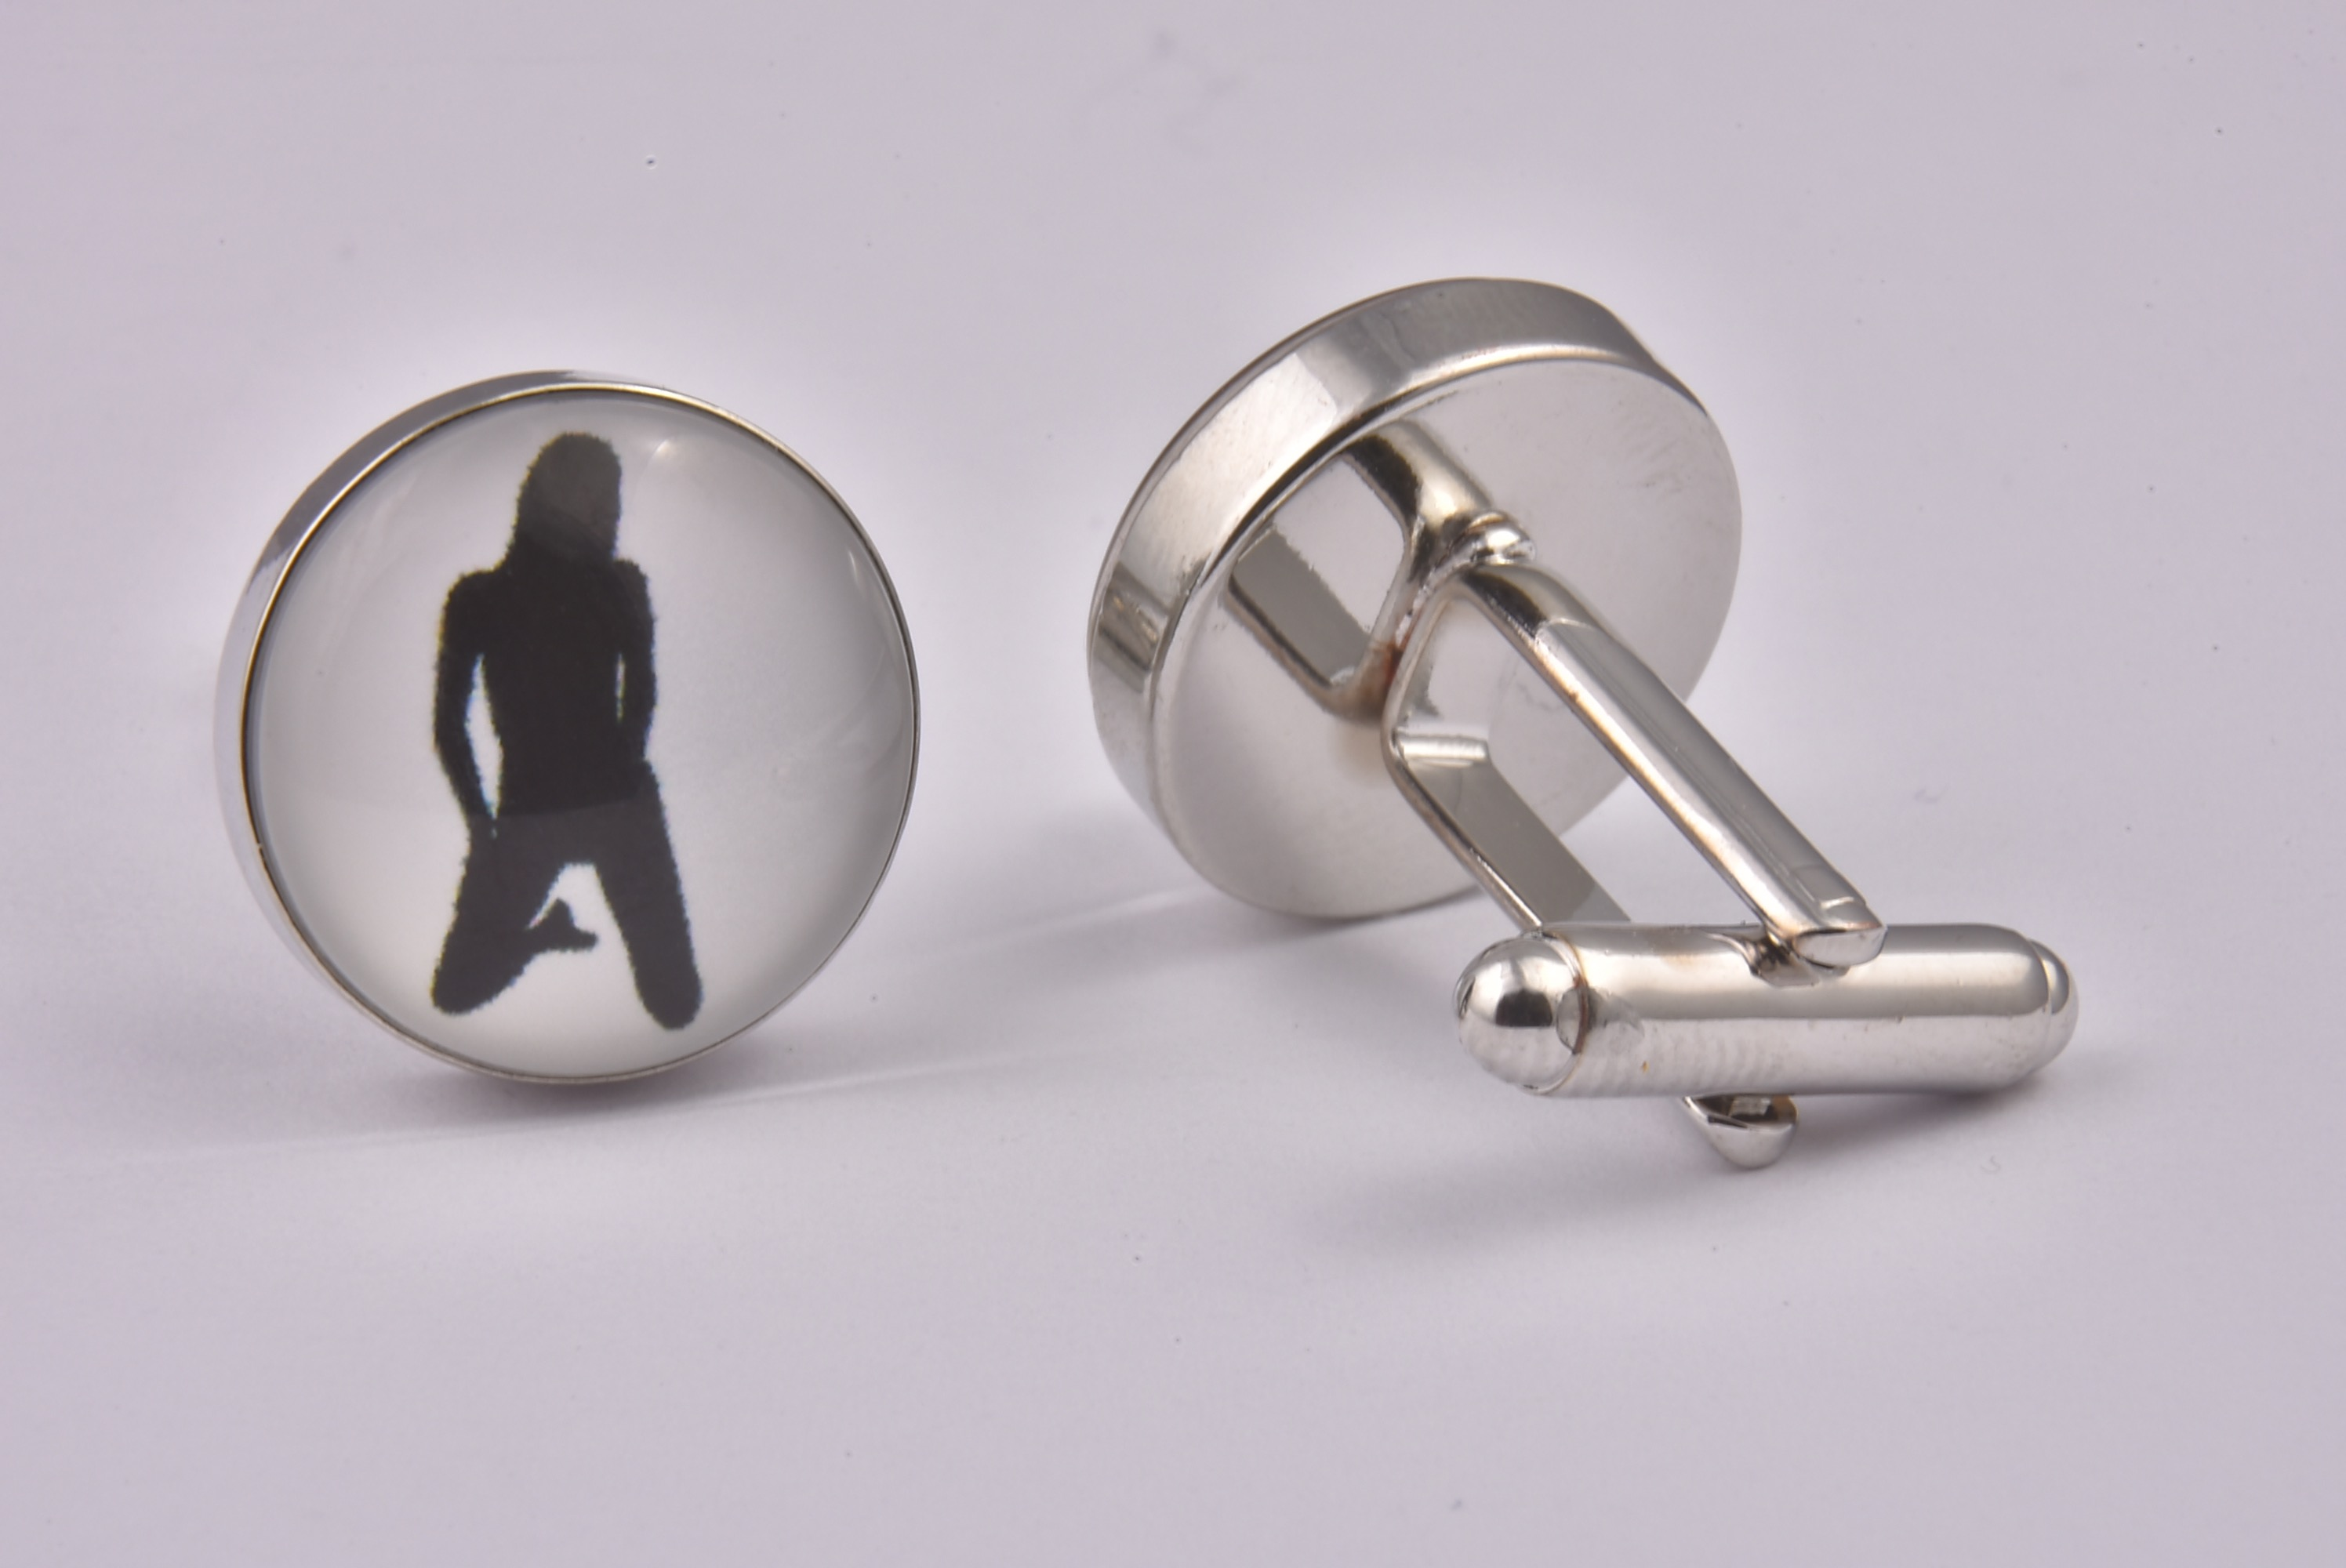 Erotic Woman Cufflinks | Cufflinks For Men